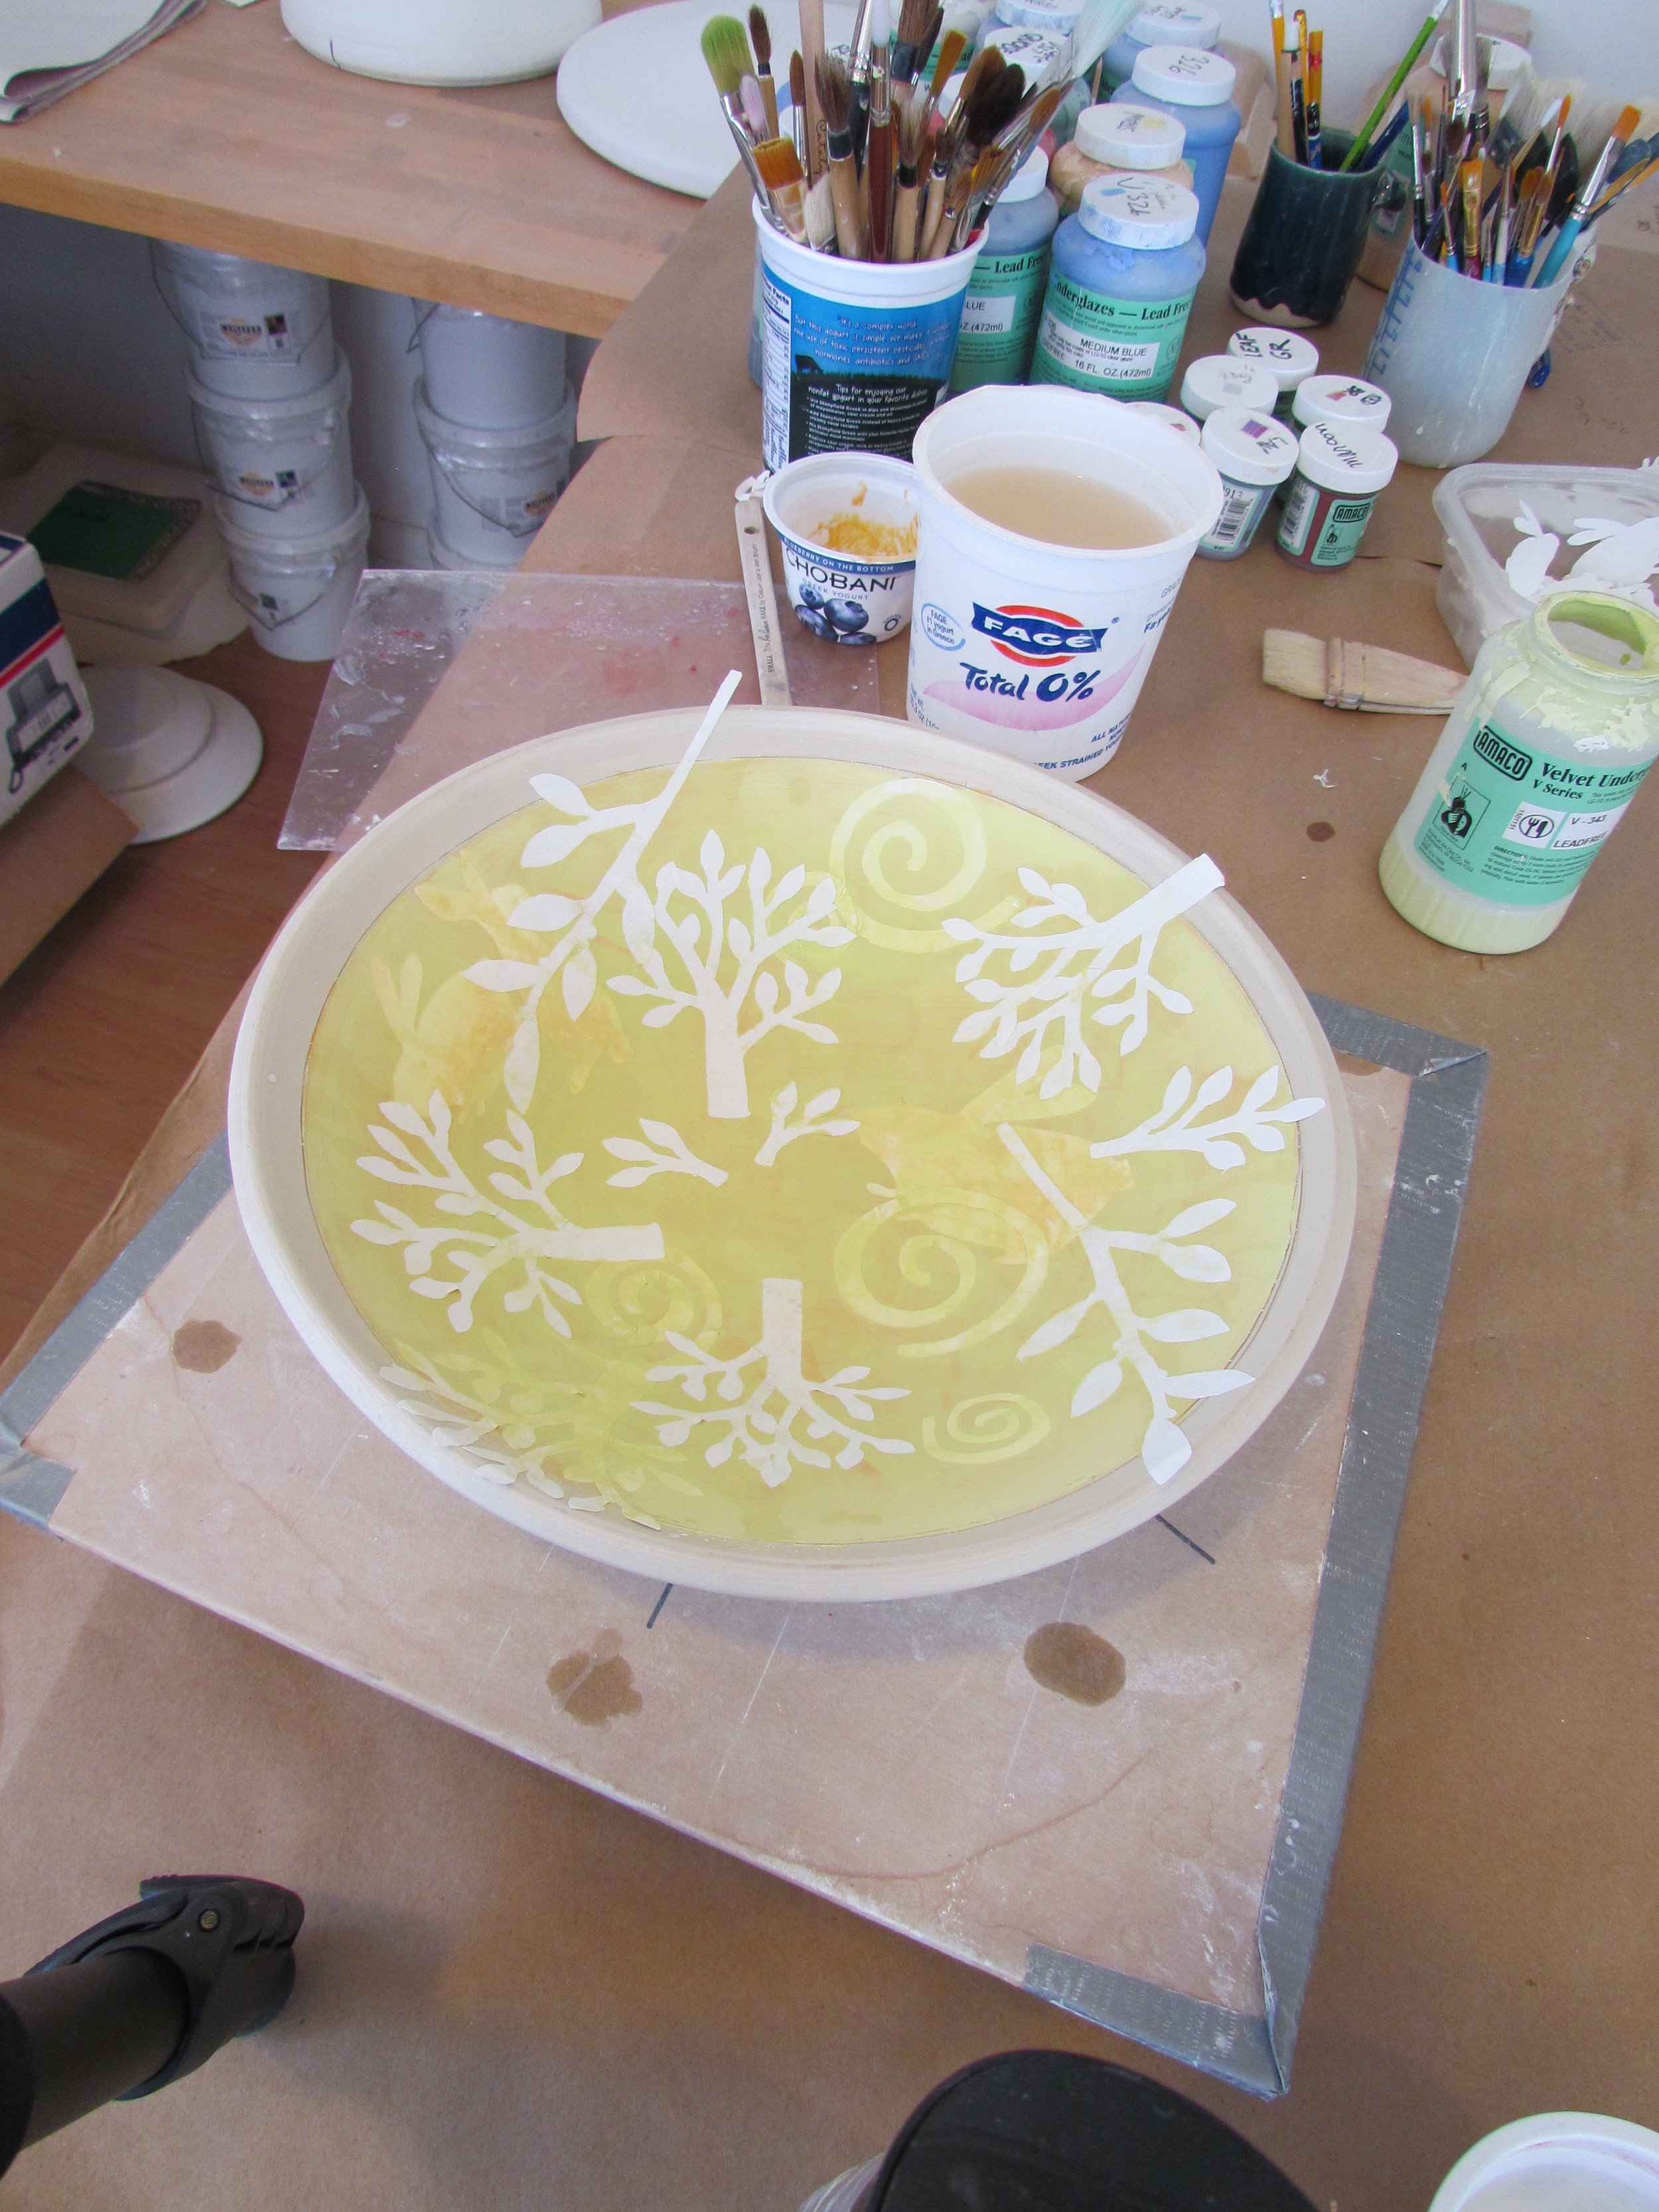 A new color of underglaze is selected( in this case chartreuse ) and applied over the second layer of stencils